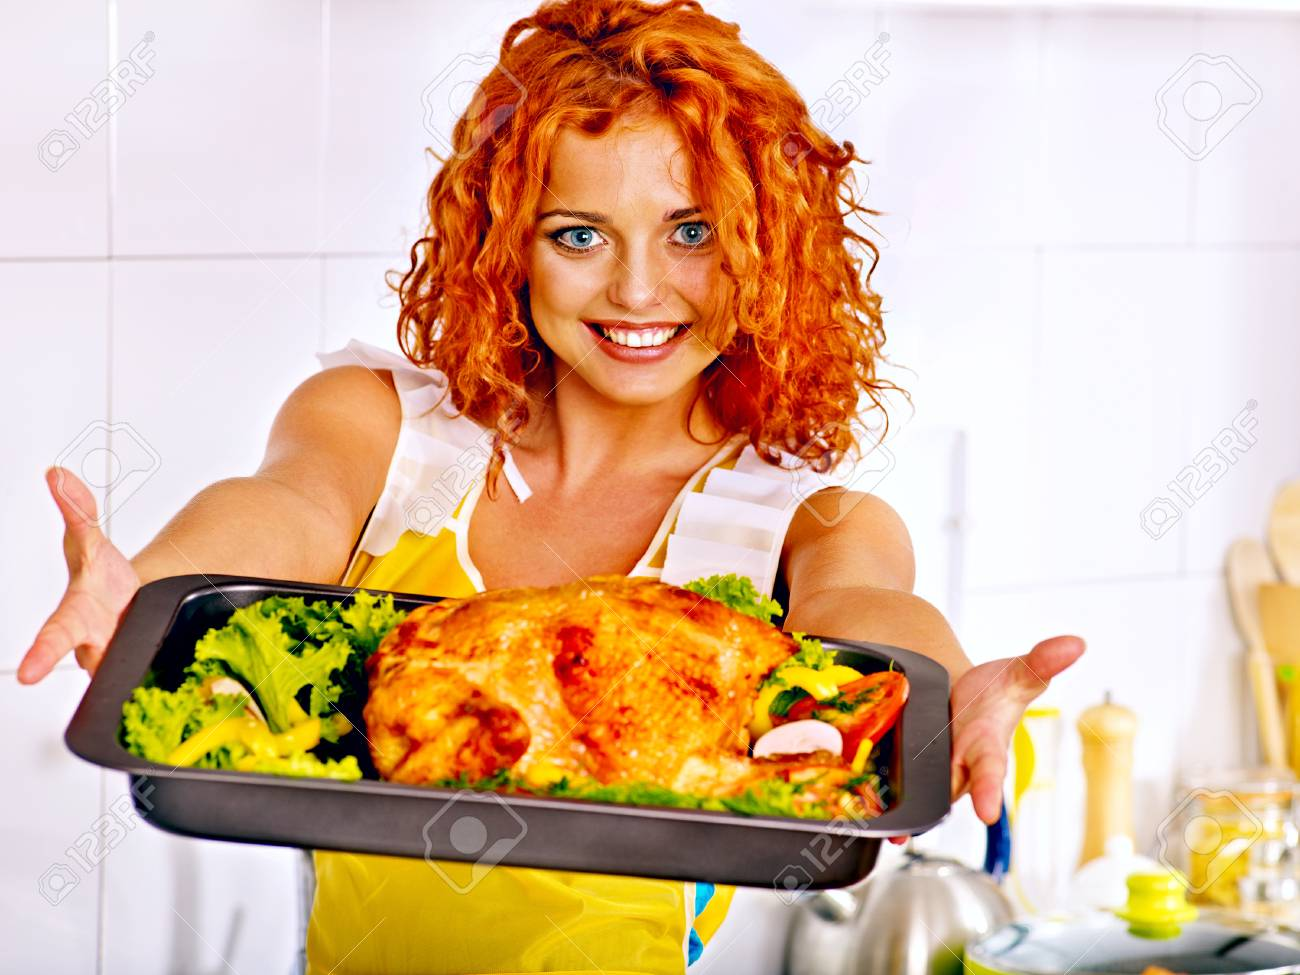 Young woman cooking chicken at kitchen. - 25073898